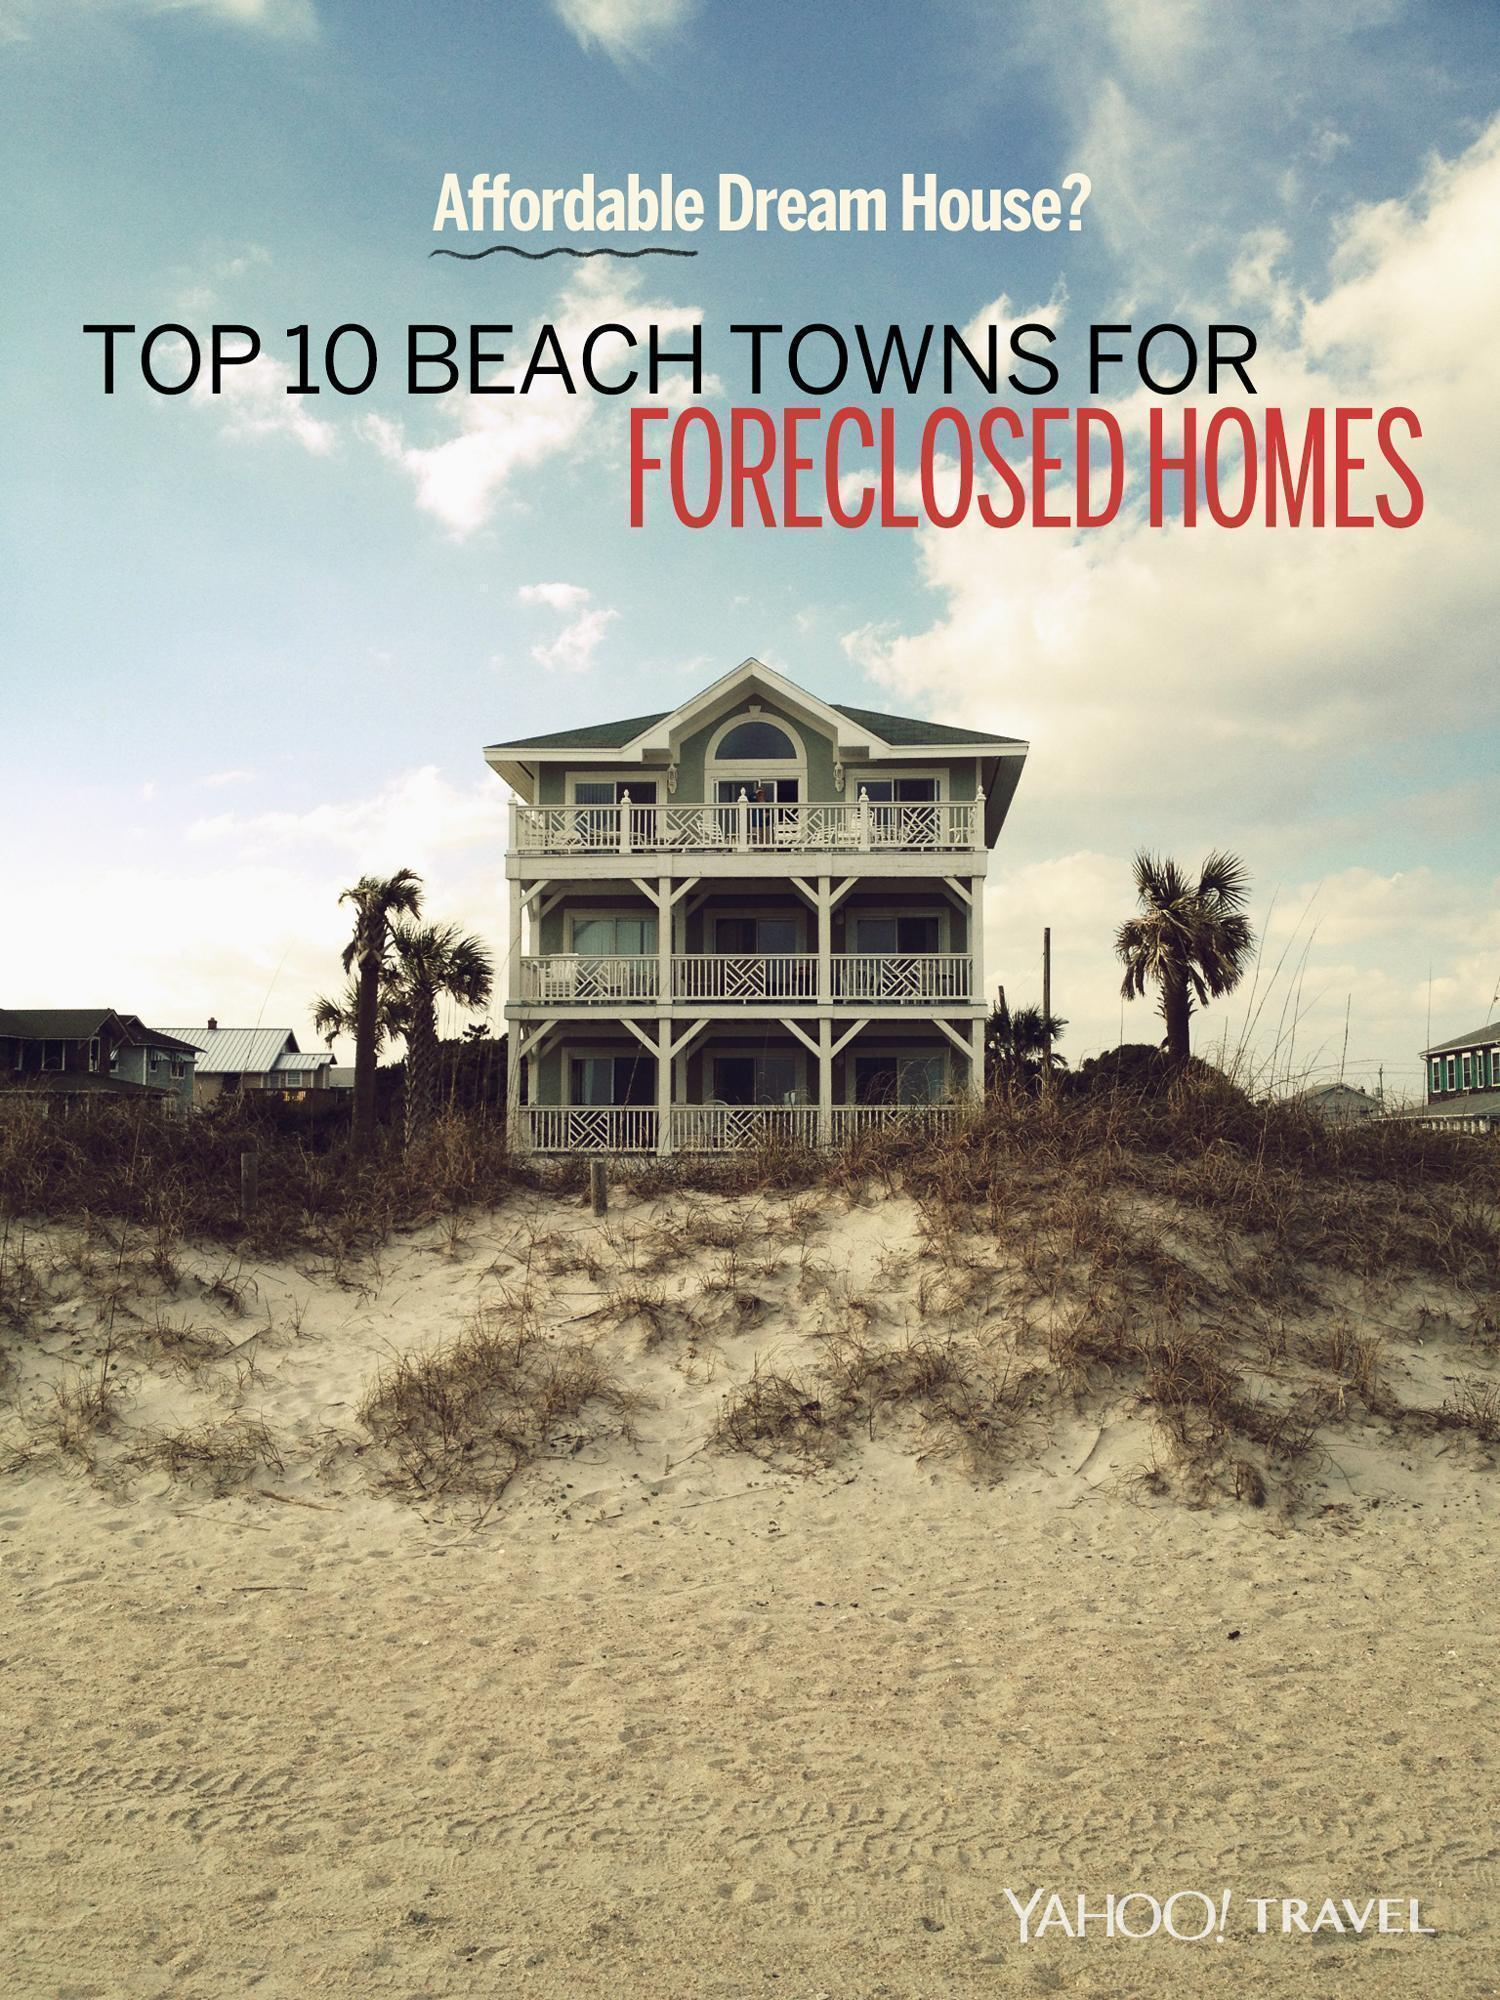 Affordable dream house top 10 beach towns for foreclosed homes - Small beach houses dream vacation ...